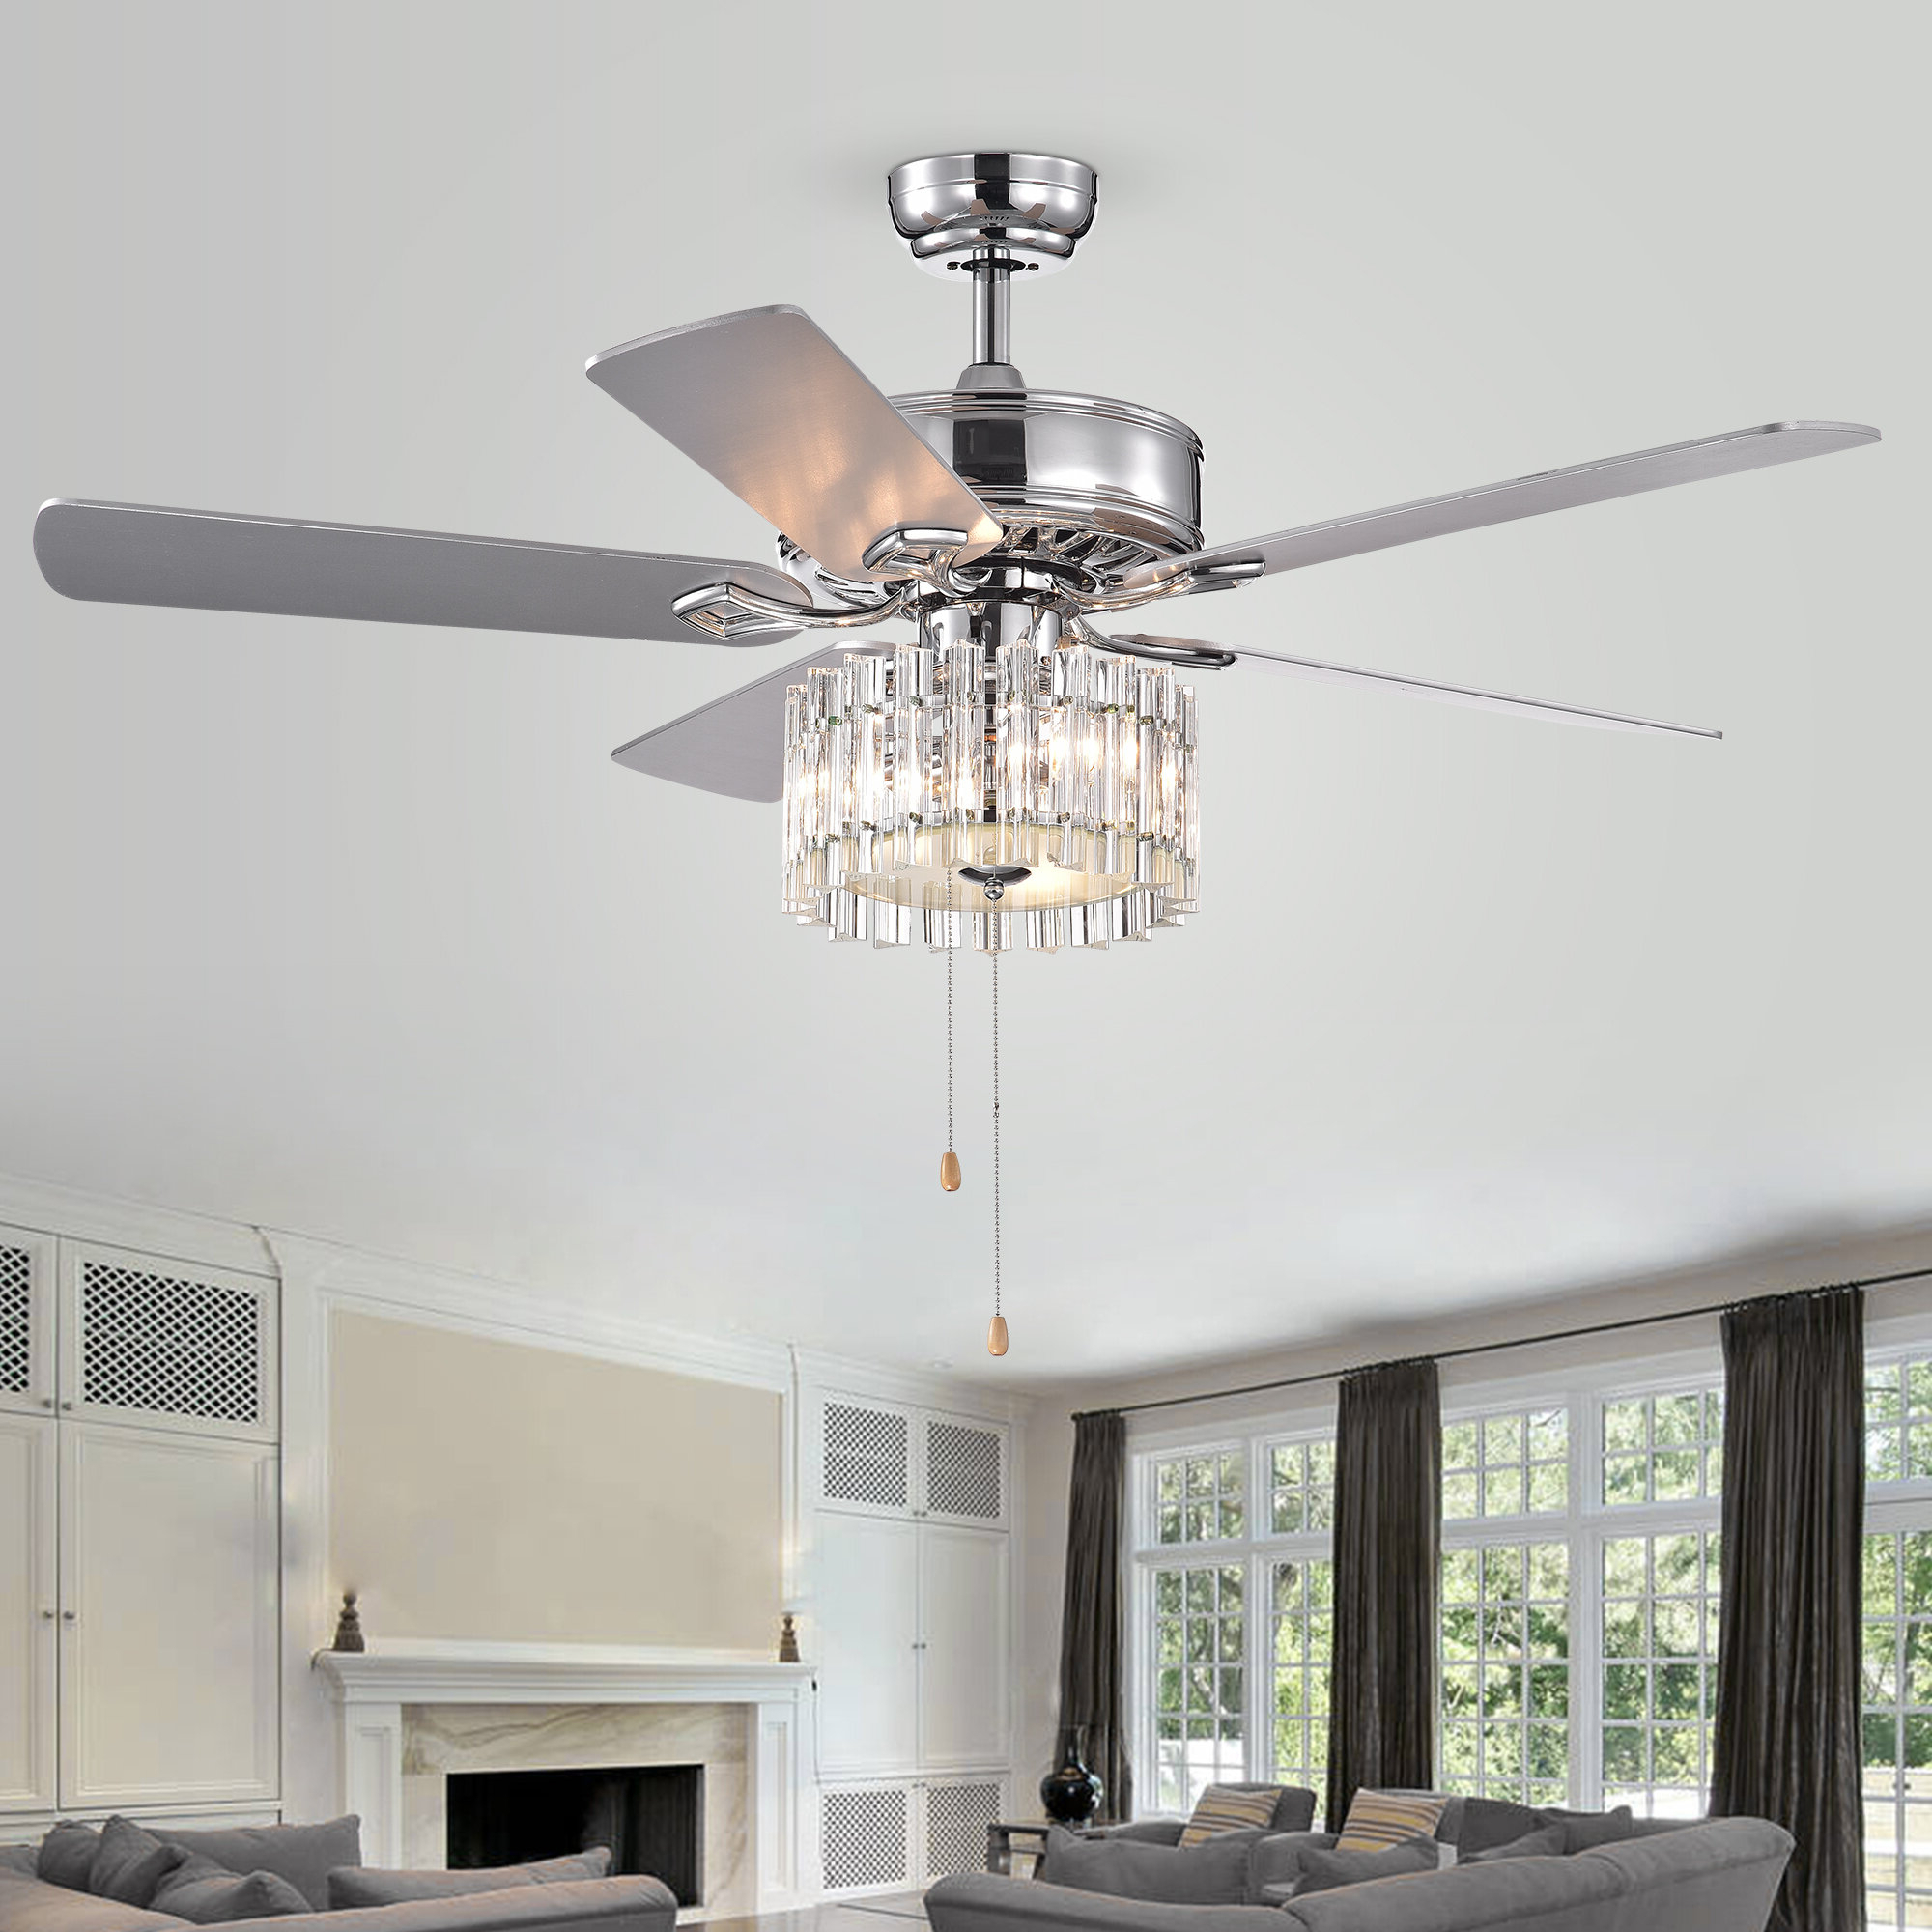 Ronan 3 Blade Ceiling Fans With Regard To Favorite Clark 5 Blade Ceiling Fan, Light Kit Included (View 10 of 20)